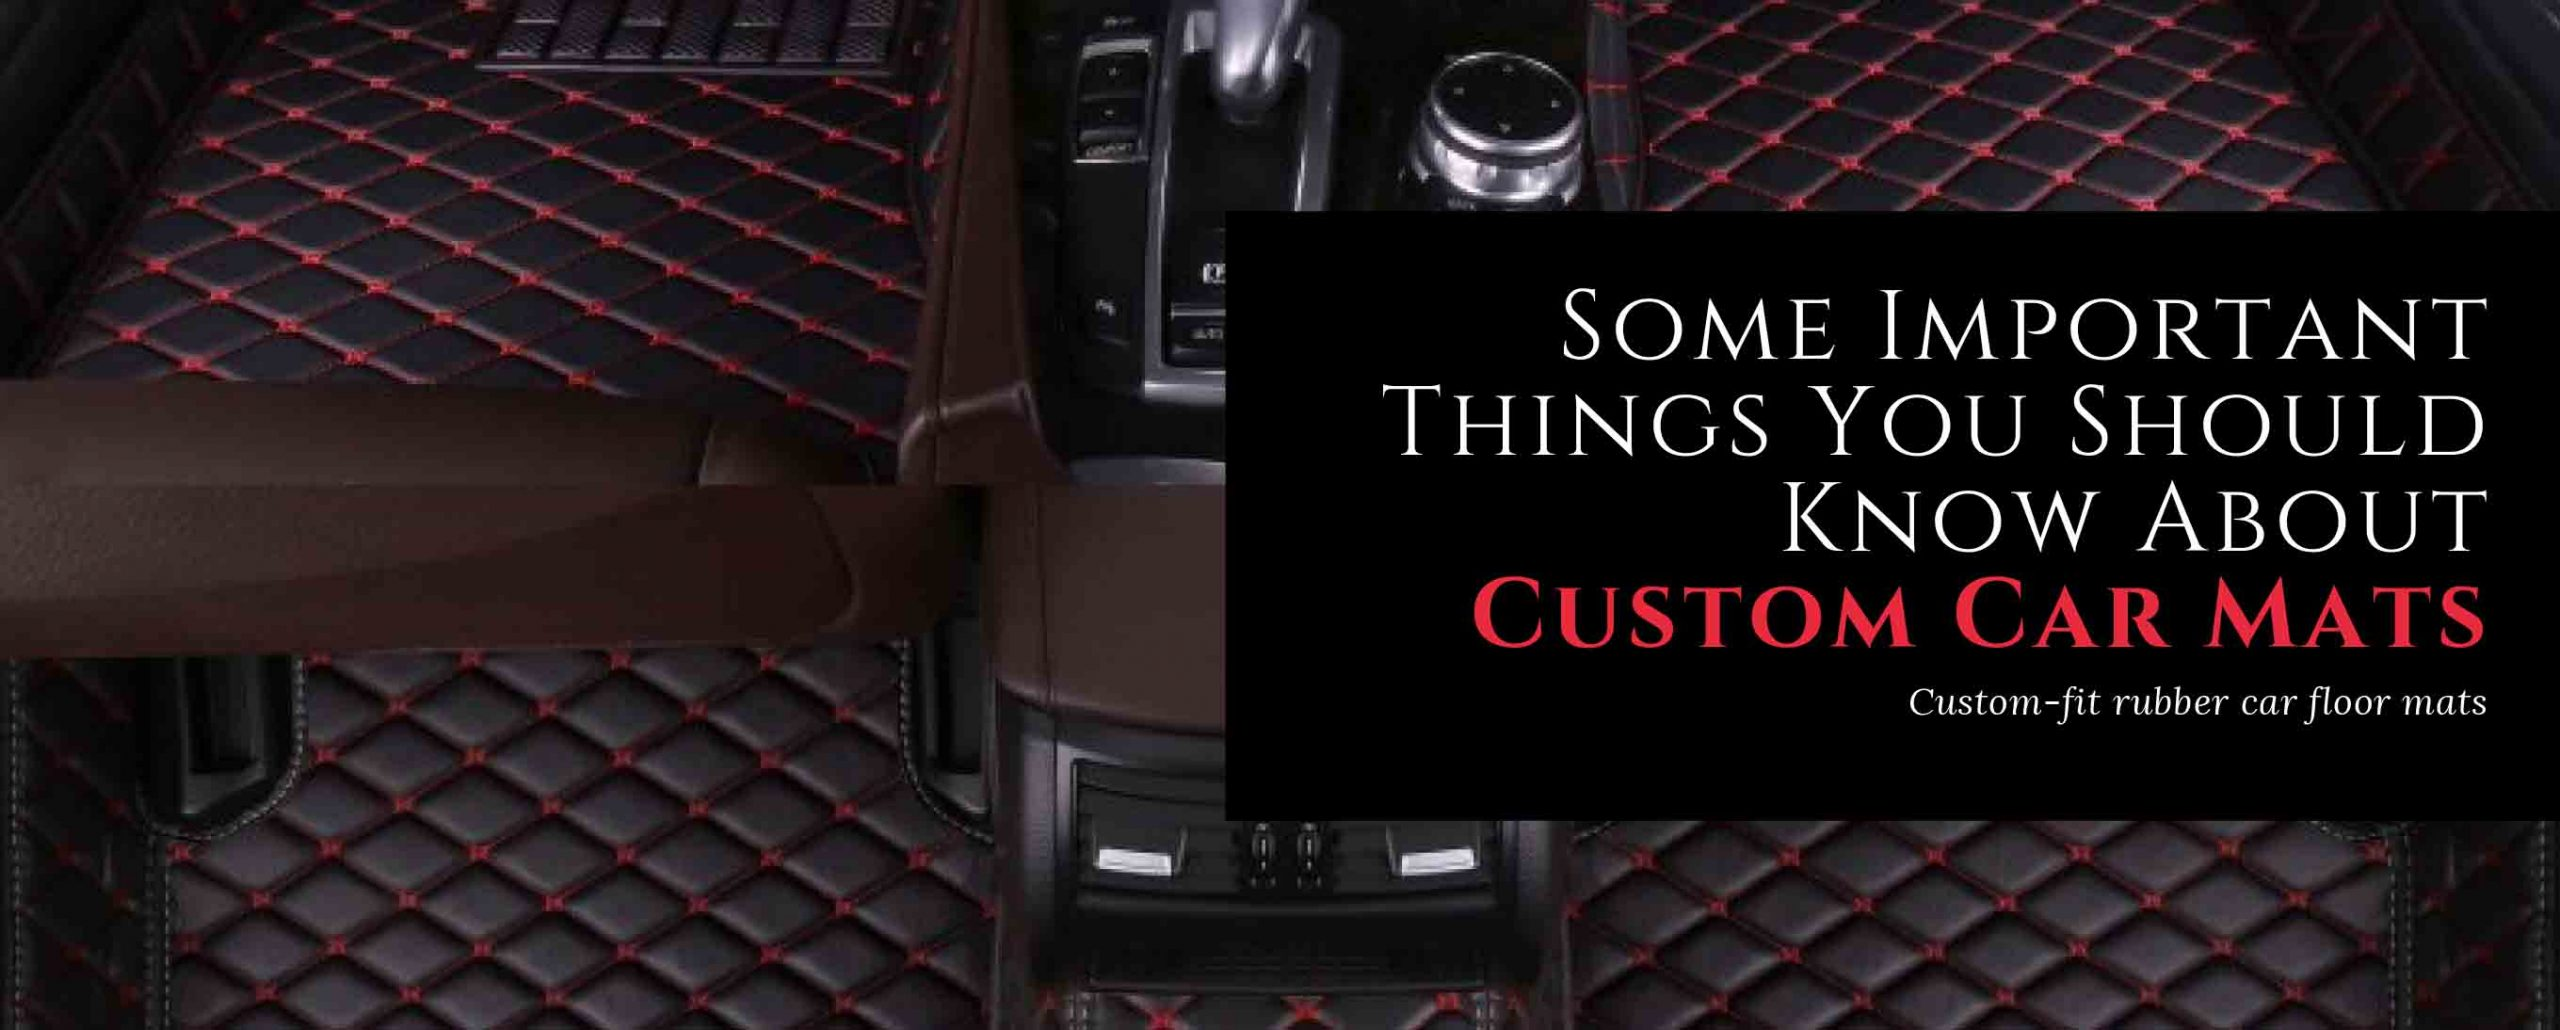 Some Important Things You Should Know About Custom Car Mats - MudSmart